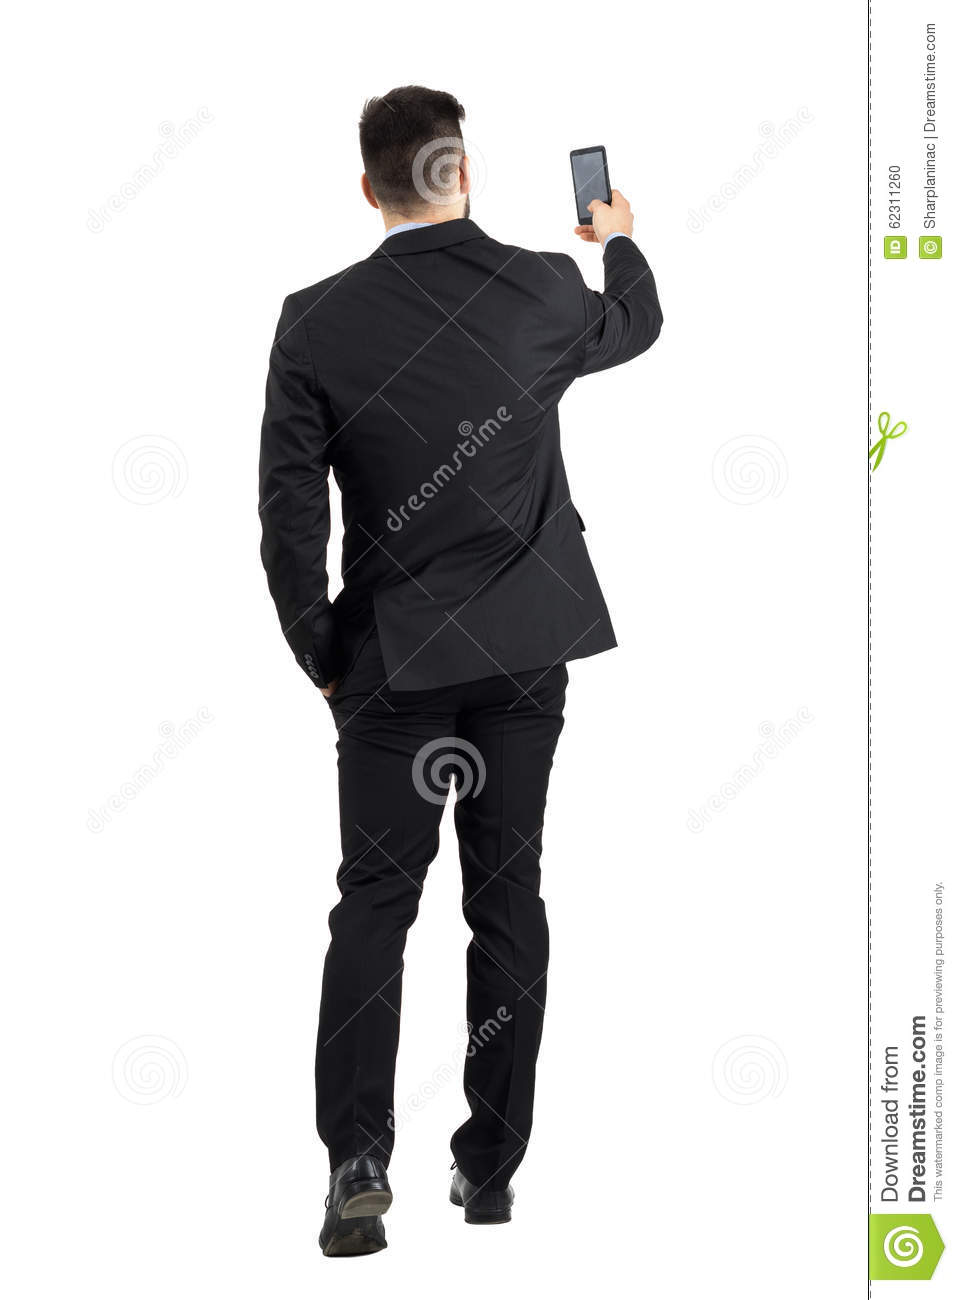 ddc3dbad42d Businessman in suit searching for good phone signal rear view or taking  photo. Full body length portrait isolated over white studio background.